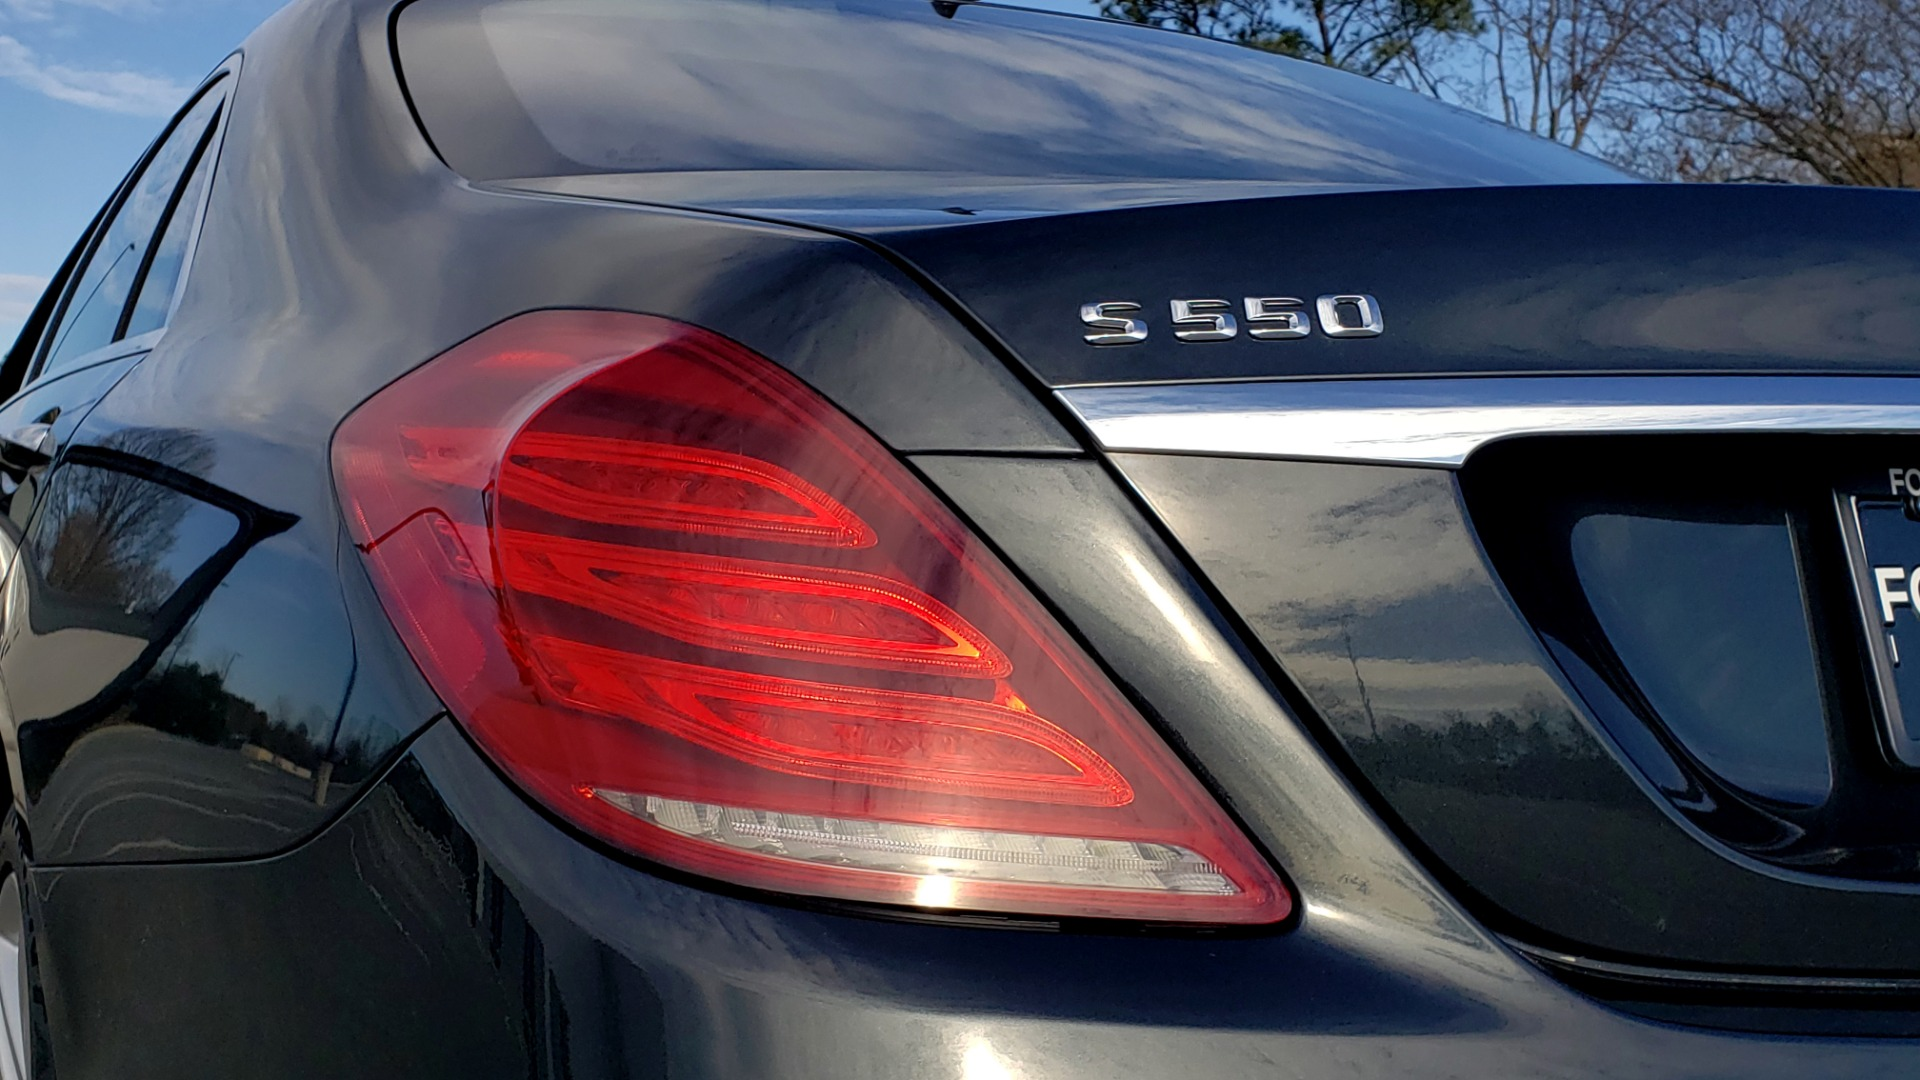 Used 2015 Mercedes-Benz S-CLASS S 550 PREMIUM / SPORT / WARMTH&COMFORT / DRVR ASST / SRND VIEW for sale Sold at Formula Imports in Charlotte NC 28227 33